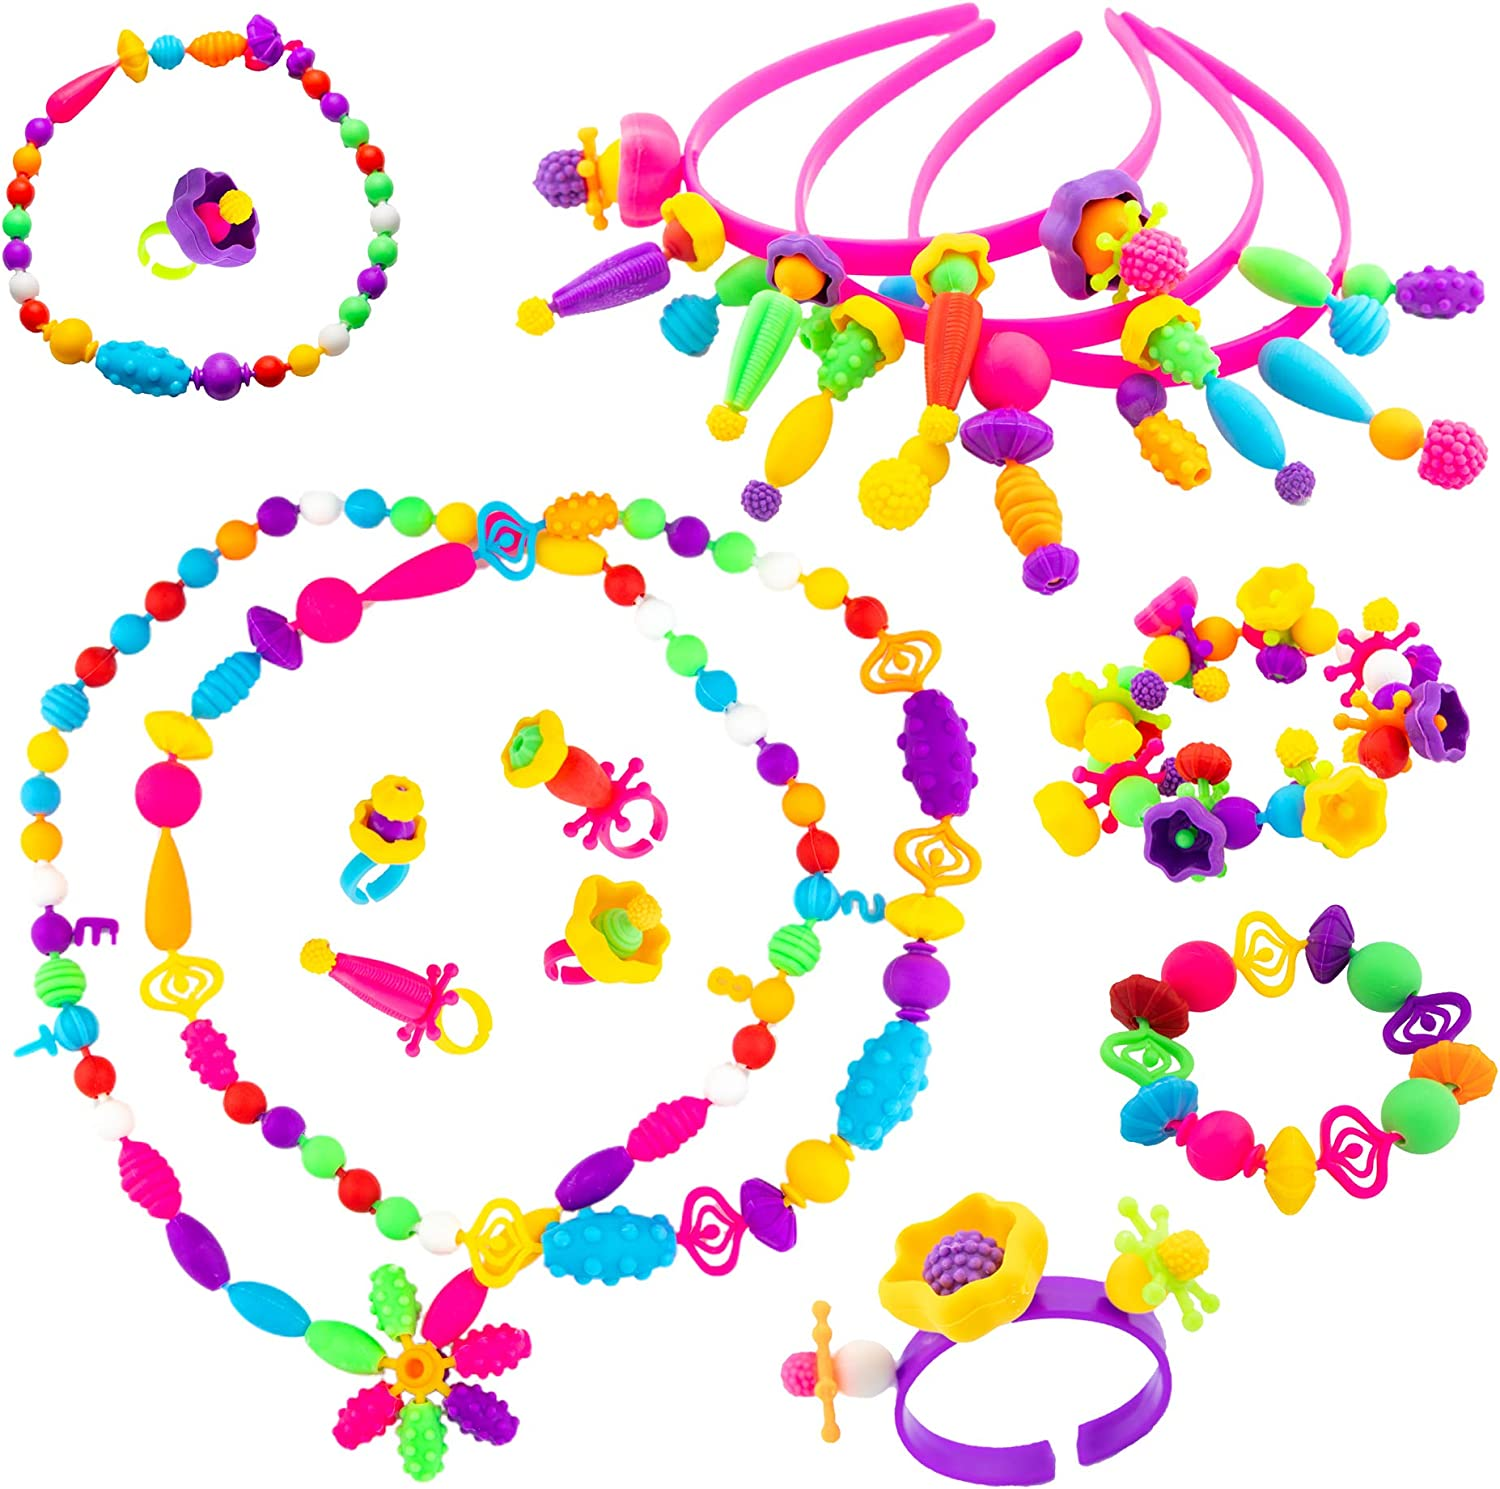 5 4 DIY Pop Beads Jewelry Snap beads for girls 6 Pop Beads Kids Designed Gift Box 8 years old 550+pc for Pop Beads for Girls 3 7 Pop snap Jewelry for Toddler Necklace kit Pop it Beads Craft